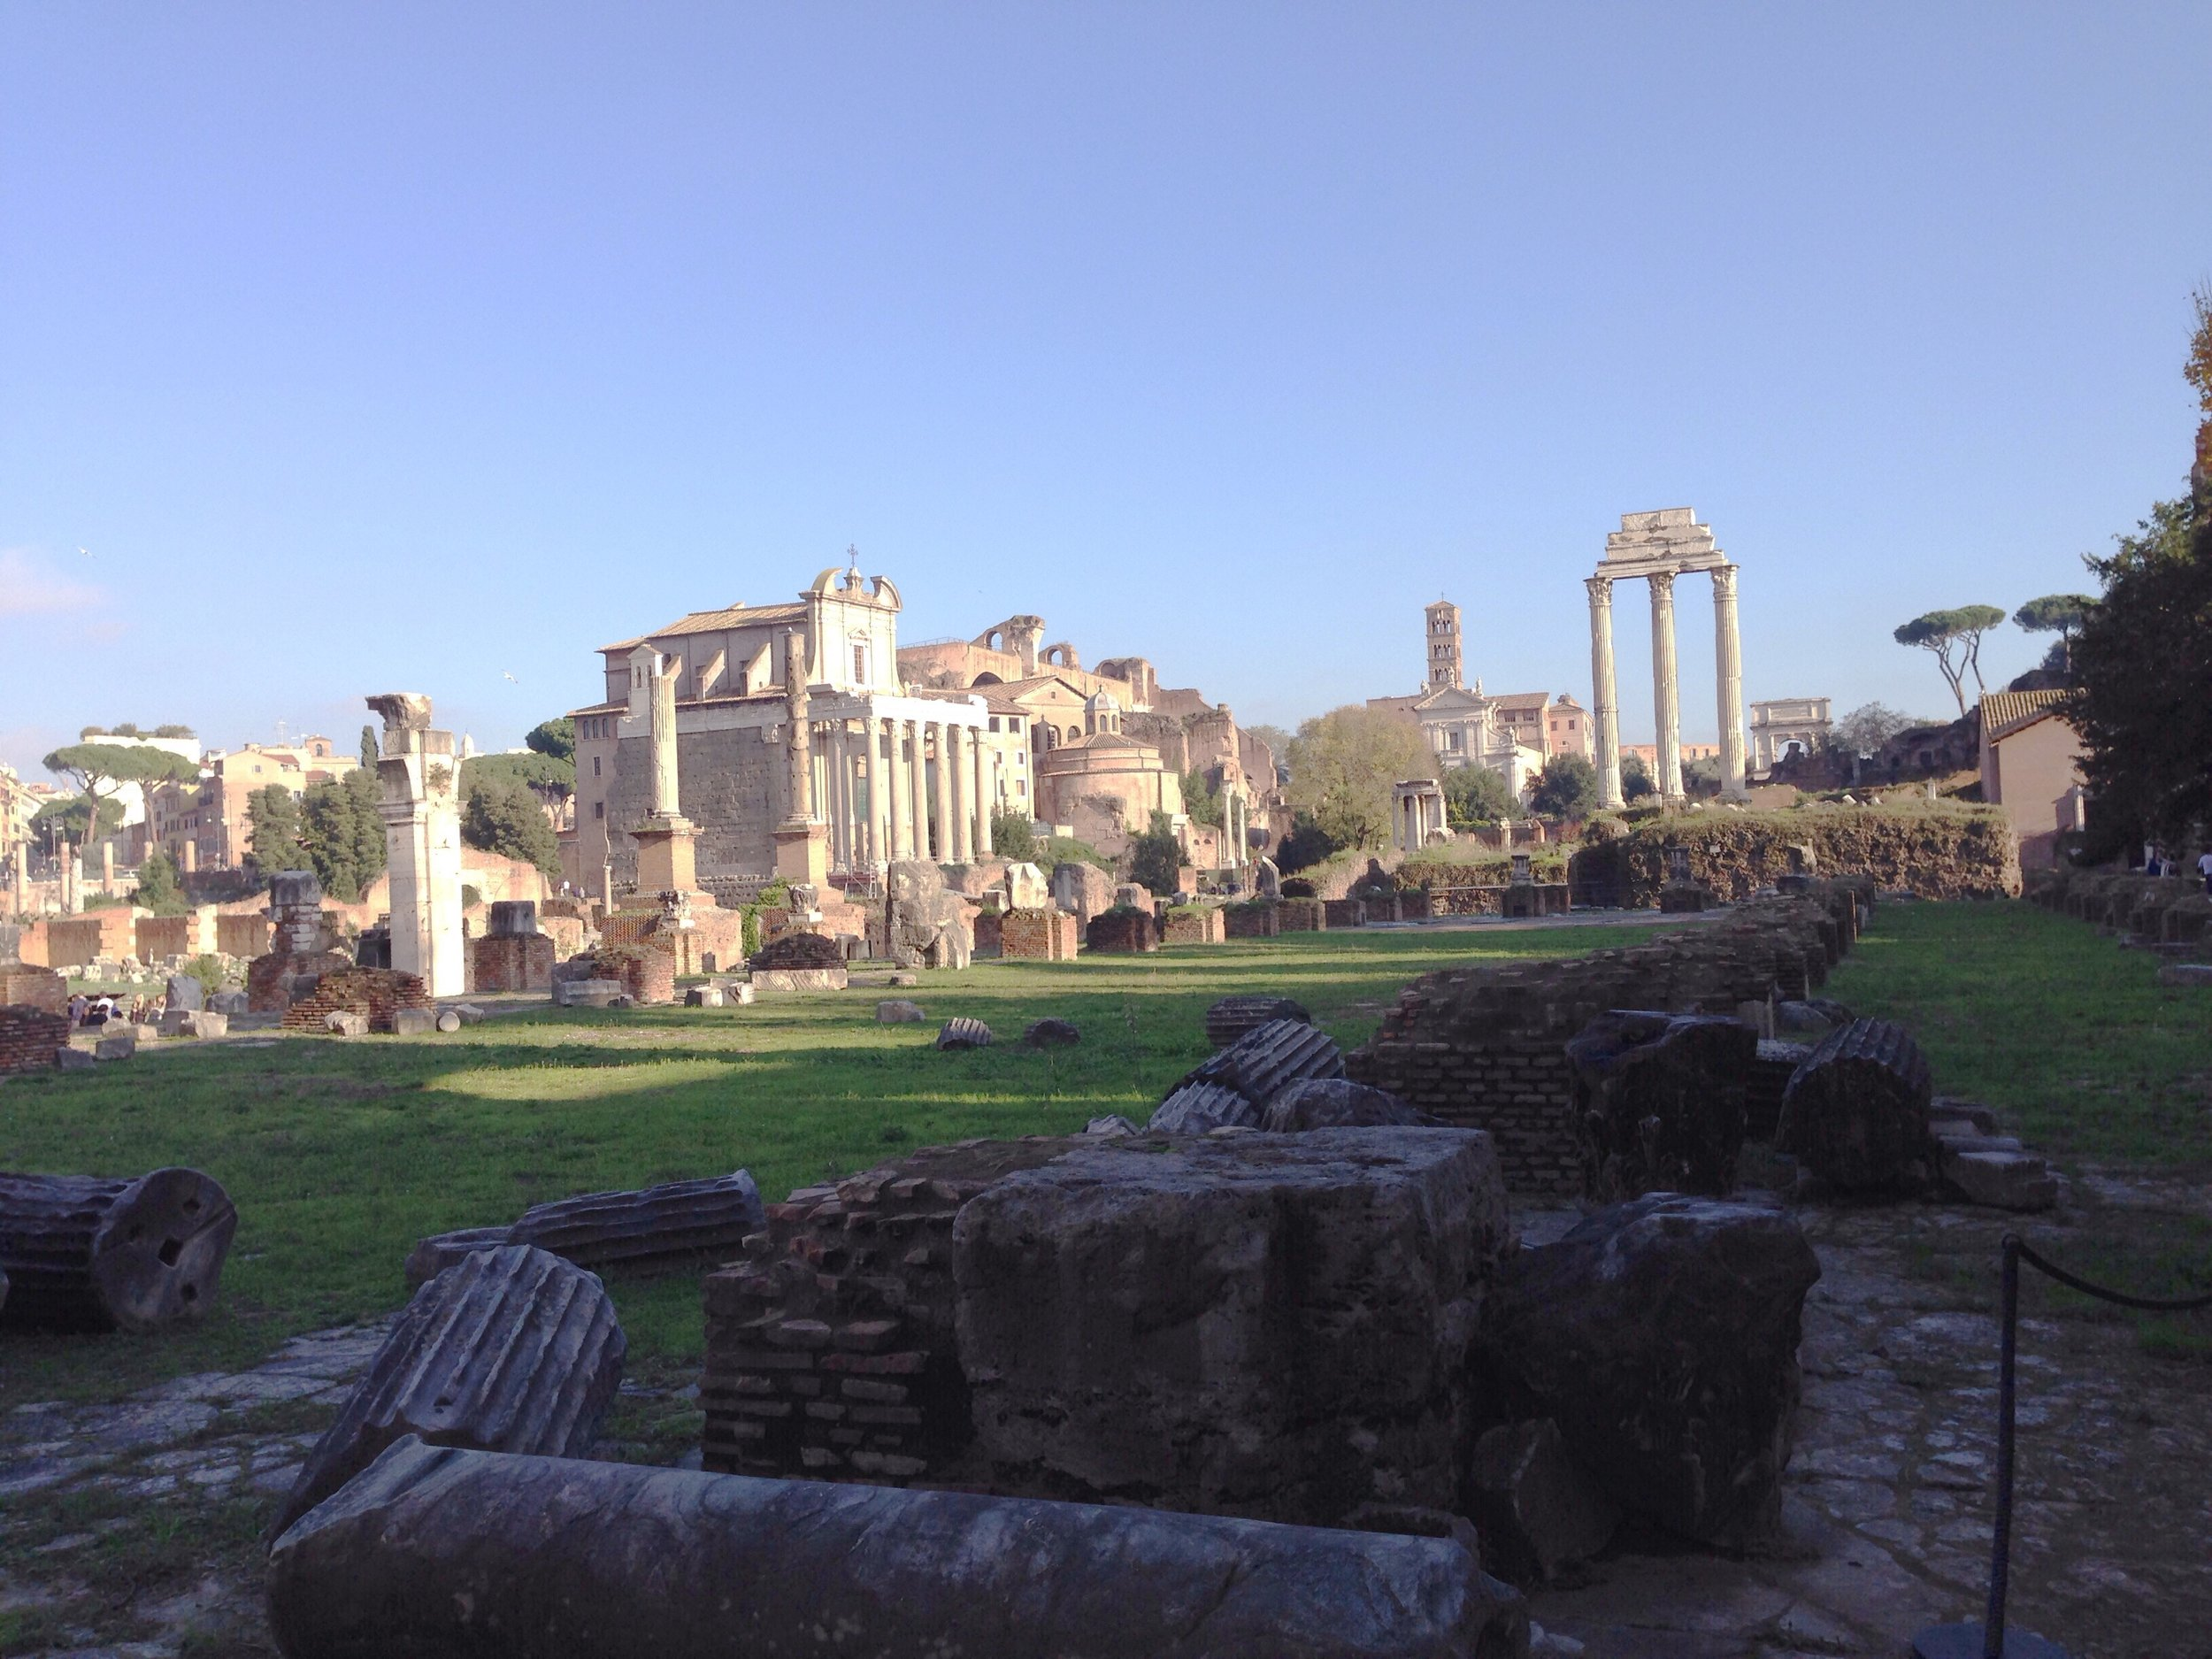 View of the Roman Forum, looking toward the temple of Castor and Pollux.